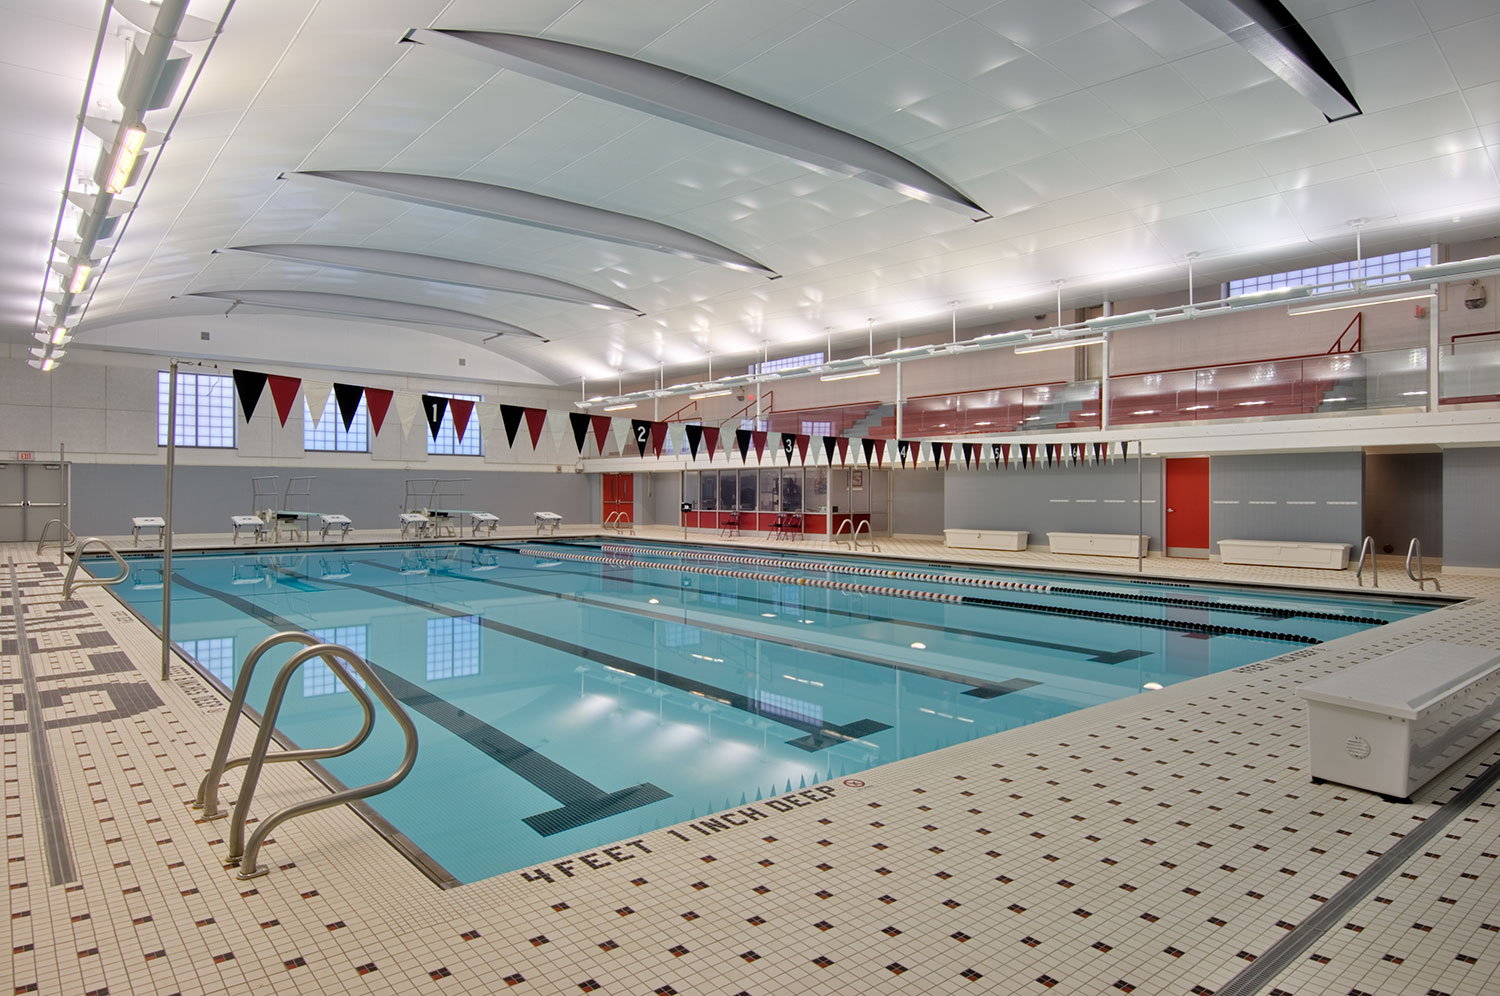 Mosaic's design for Glens Falls' new swimming pool includes mechanical and timing systems, an acoustic ceiling system and wall panels to diminish sound levels during practices and competitions.